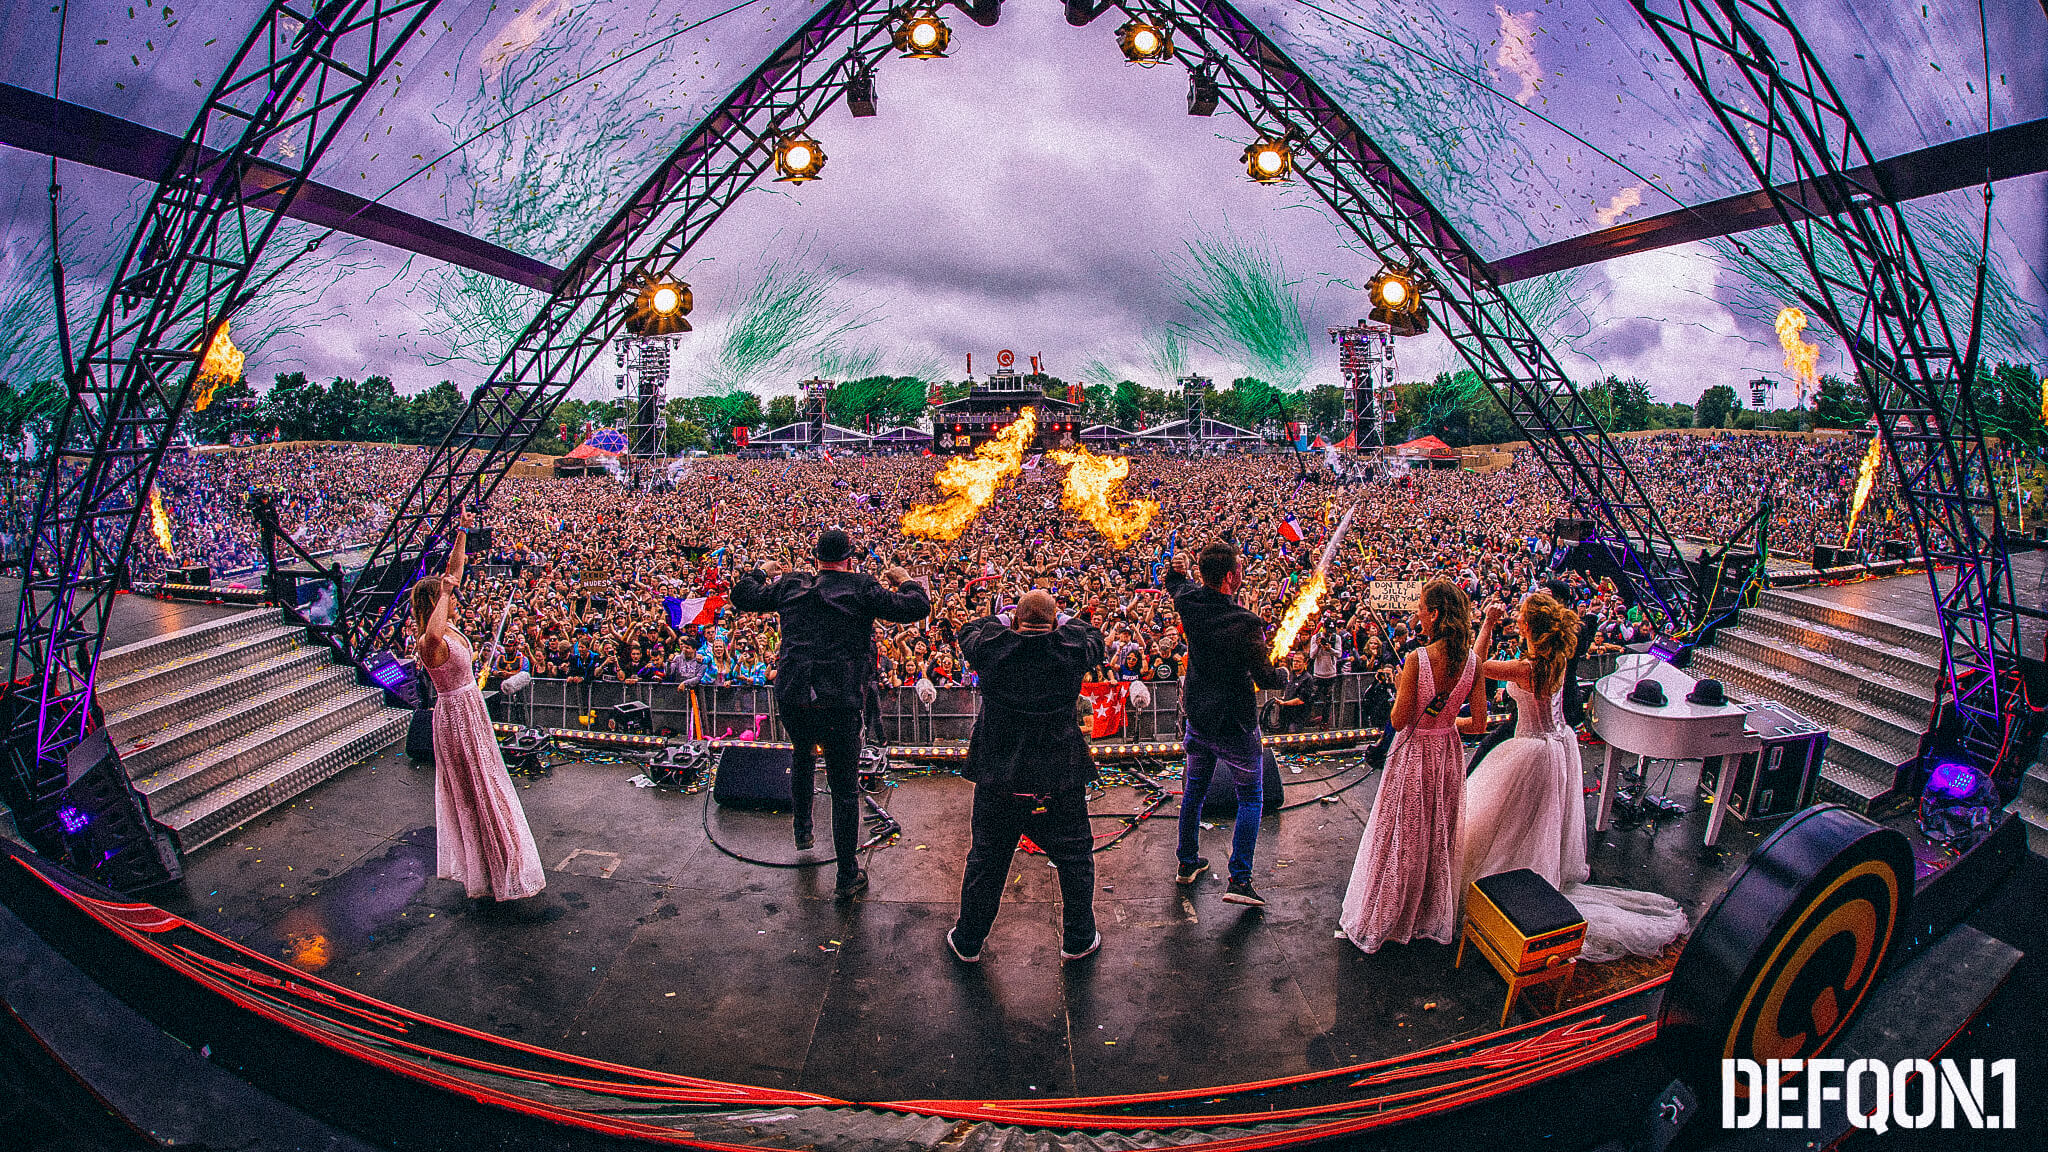 Peacock in Concert at Defqon 2018